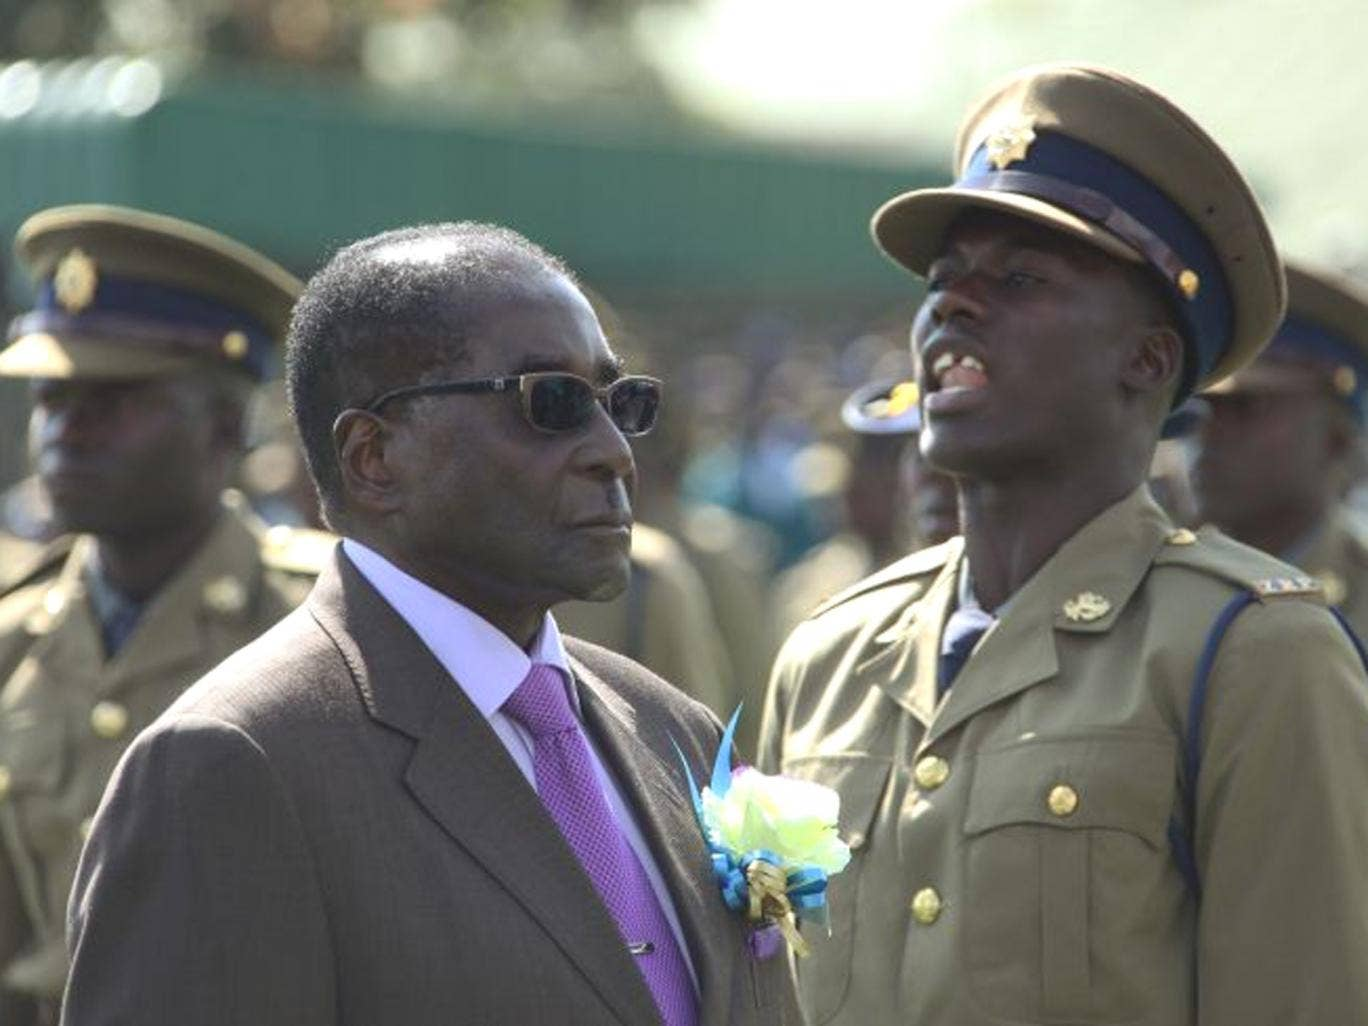 President Robert Mugabe has been accused of 'frog marching' Zimbabweans towards another 'illegitimate and violent' election after unilaterally declaring 31 July as polling day